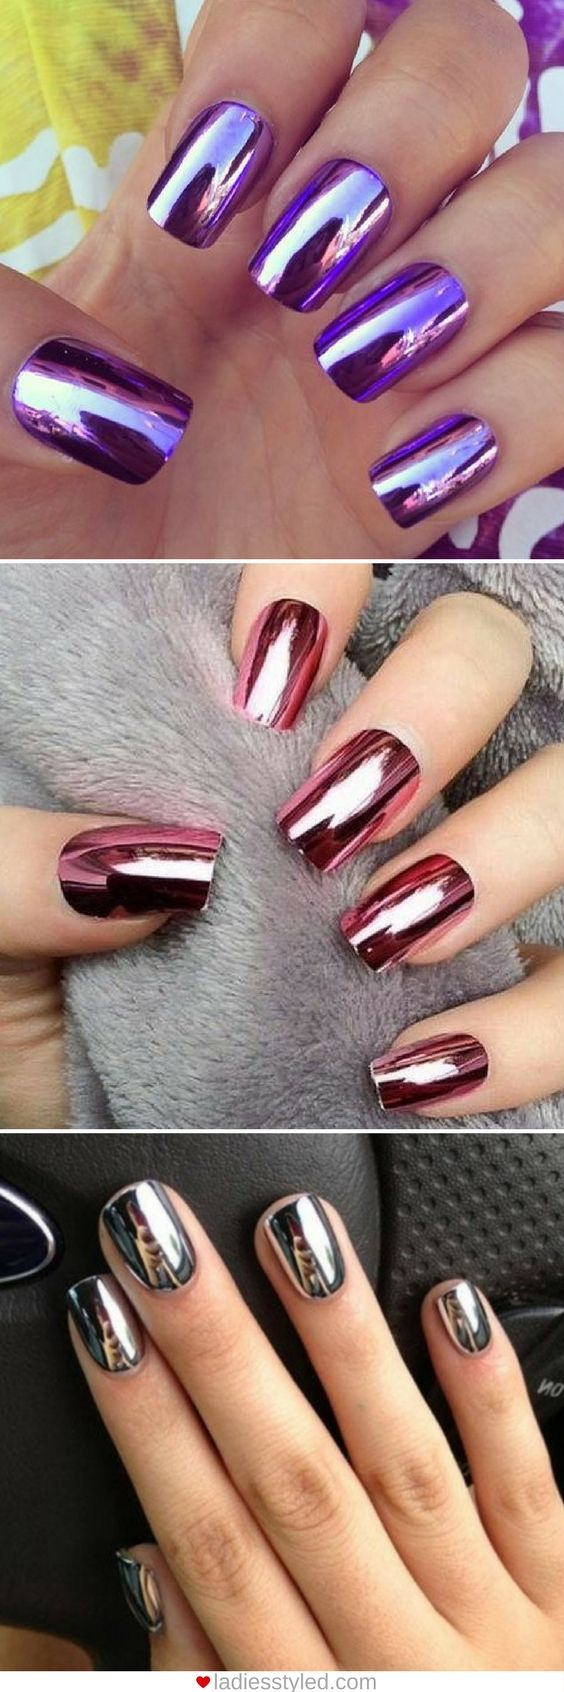 best 25+ nail art ideas on pinterest | pretty nails, elegant nails